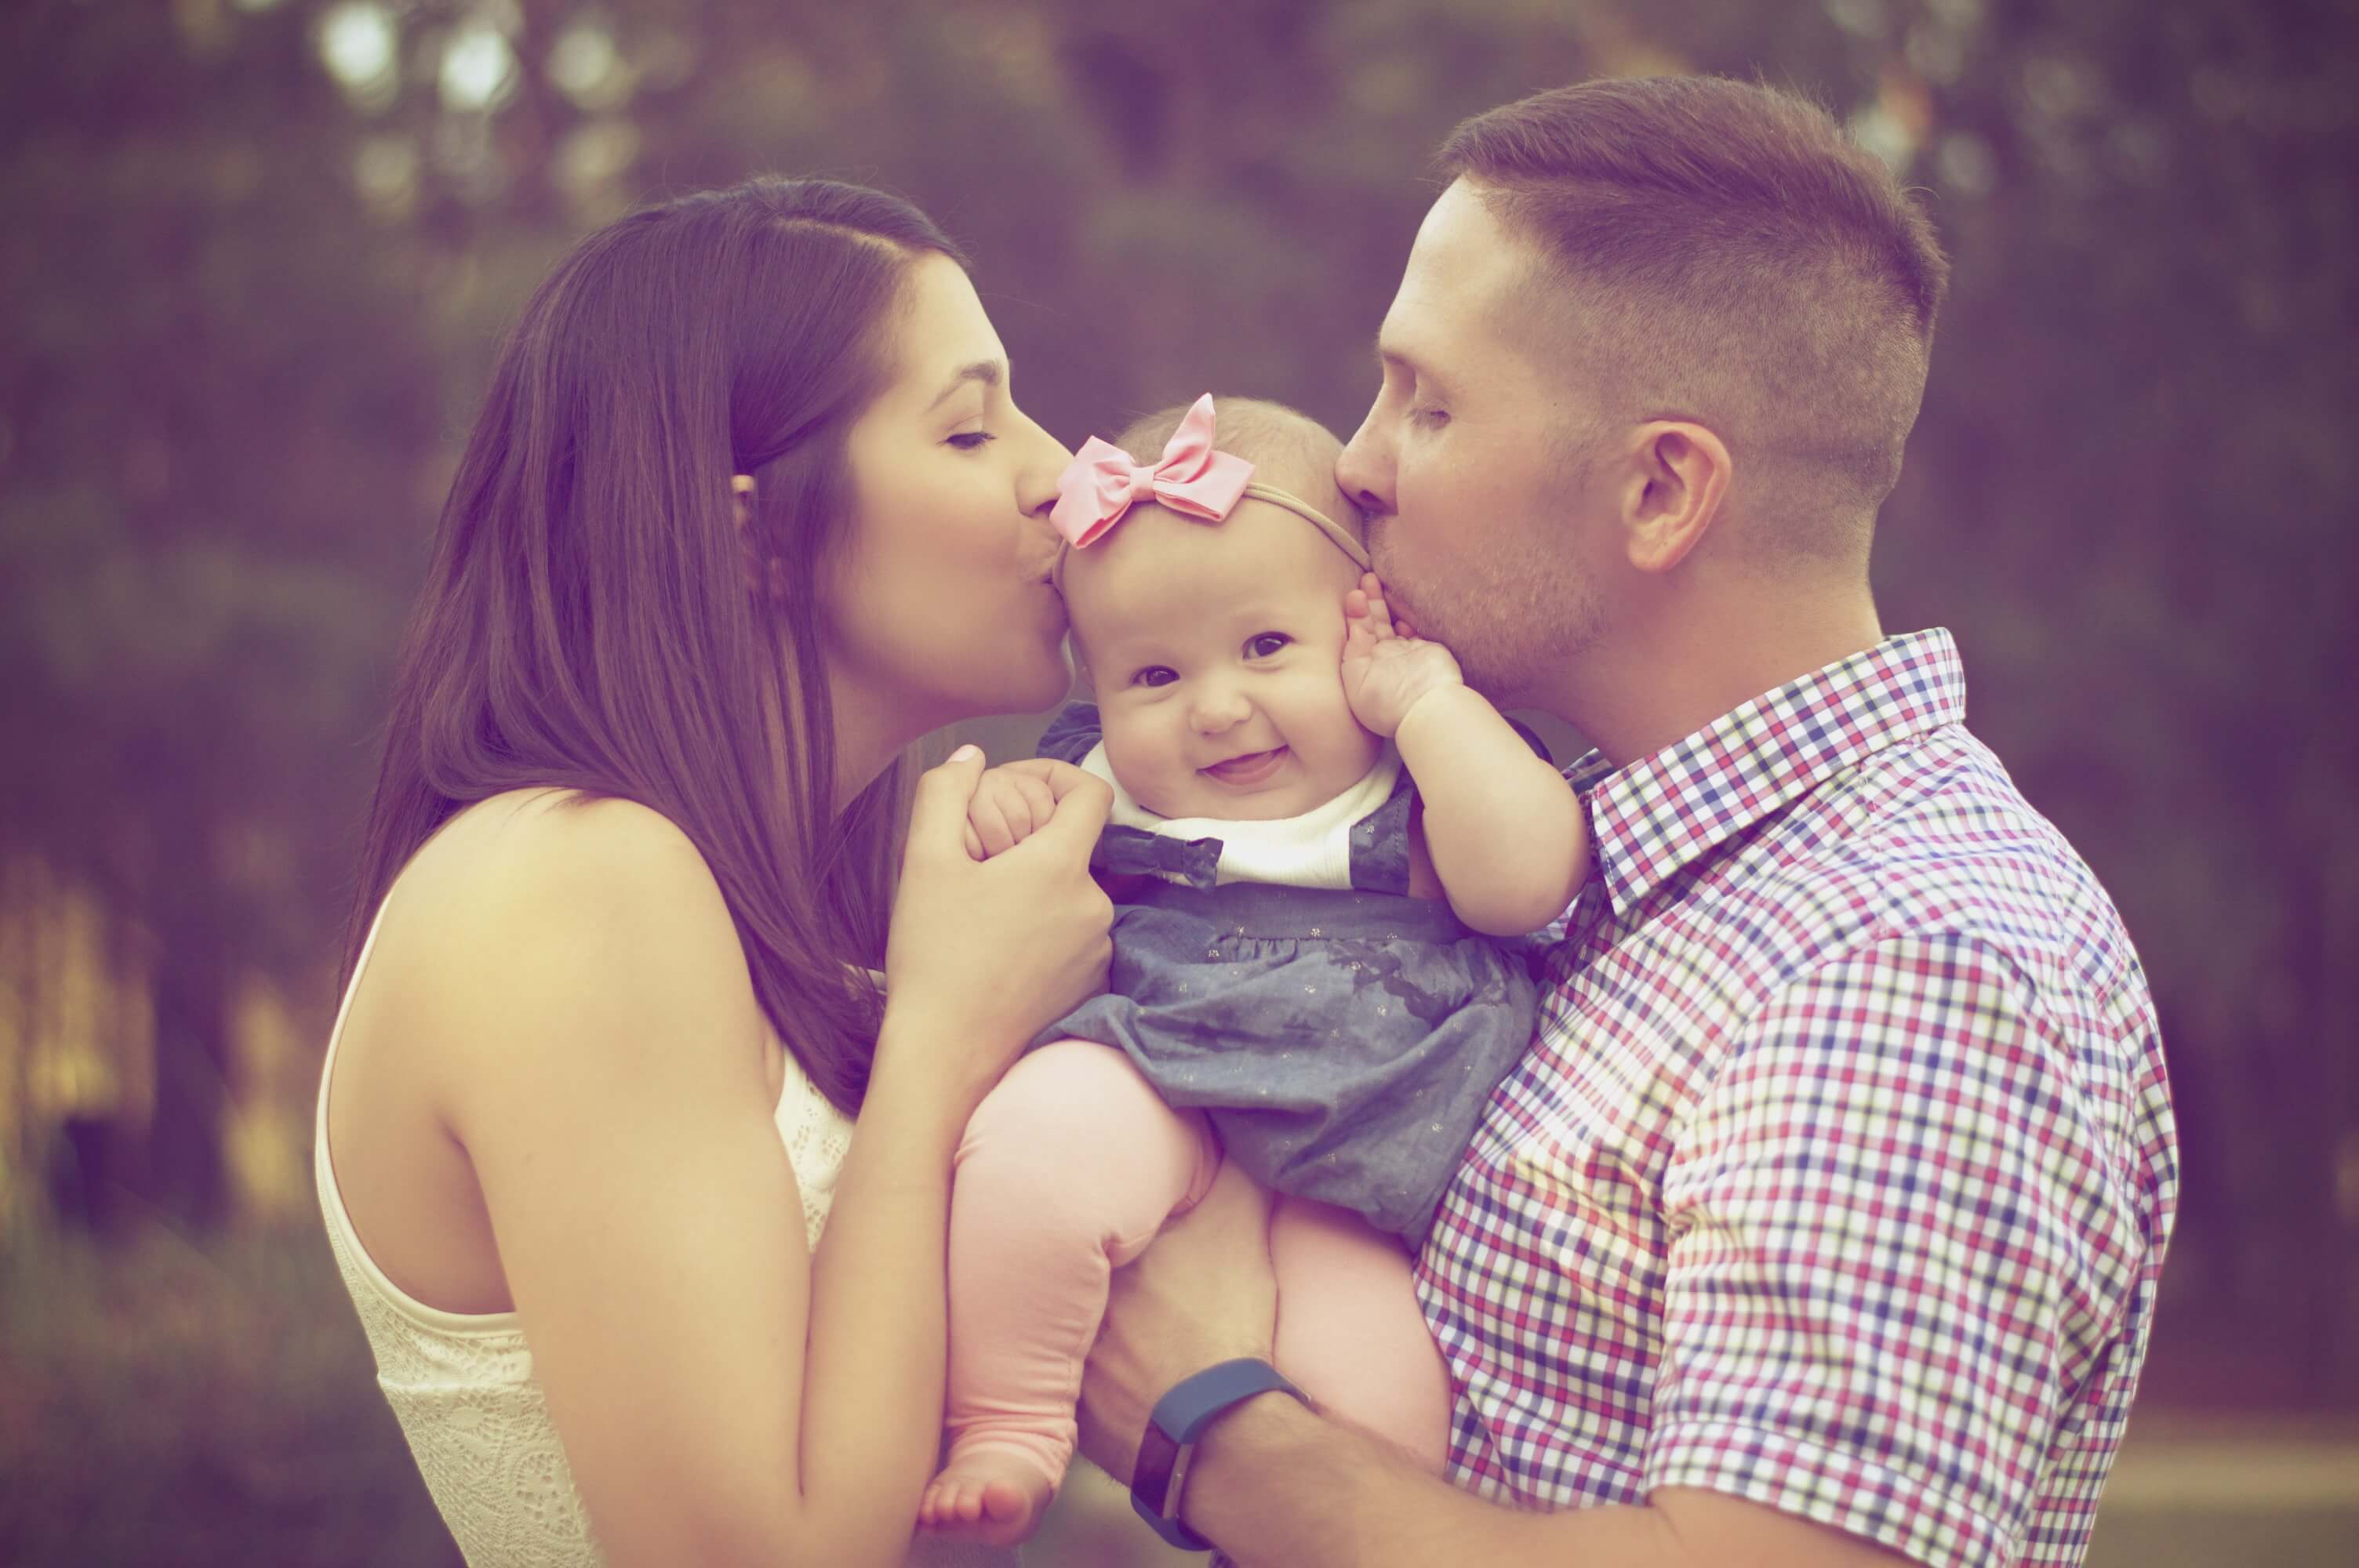 Developing Speech With Your Baby: Tips For Intended Parents To Language Development & Ways To Boost Your Surrogate Baby's Speech Skills: Where To Find More Info On Surrogacy